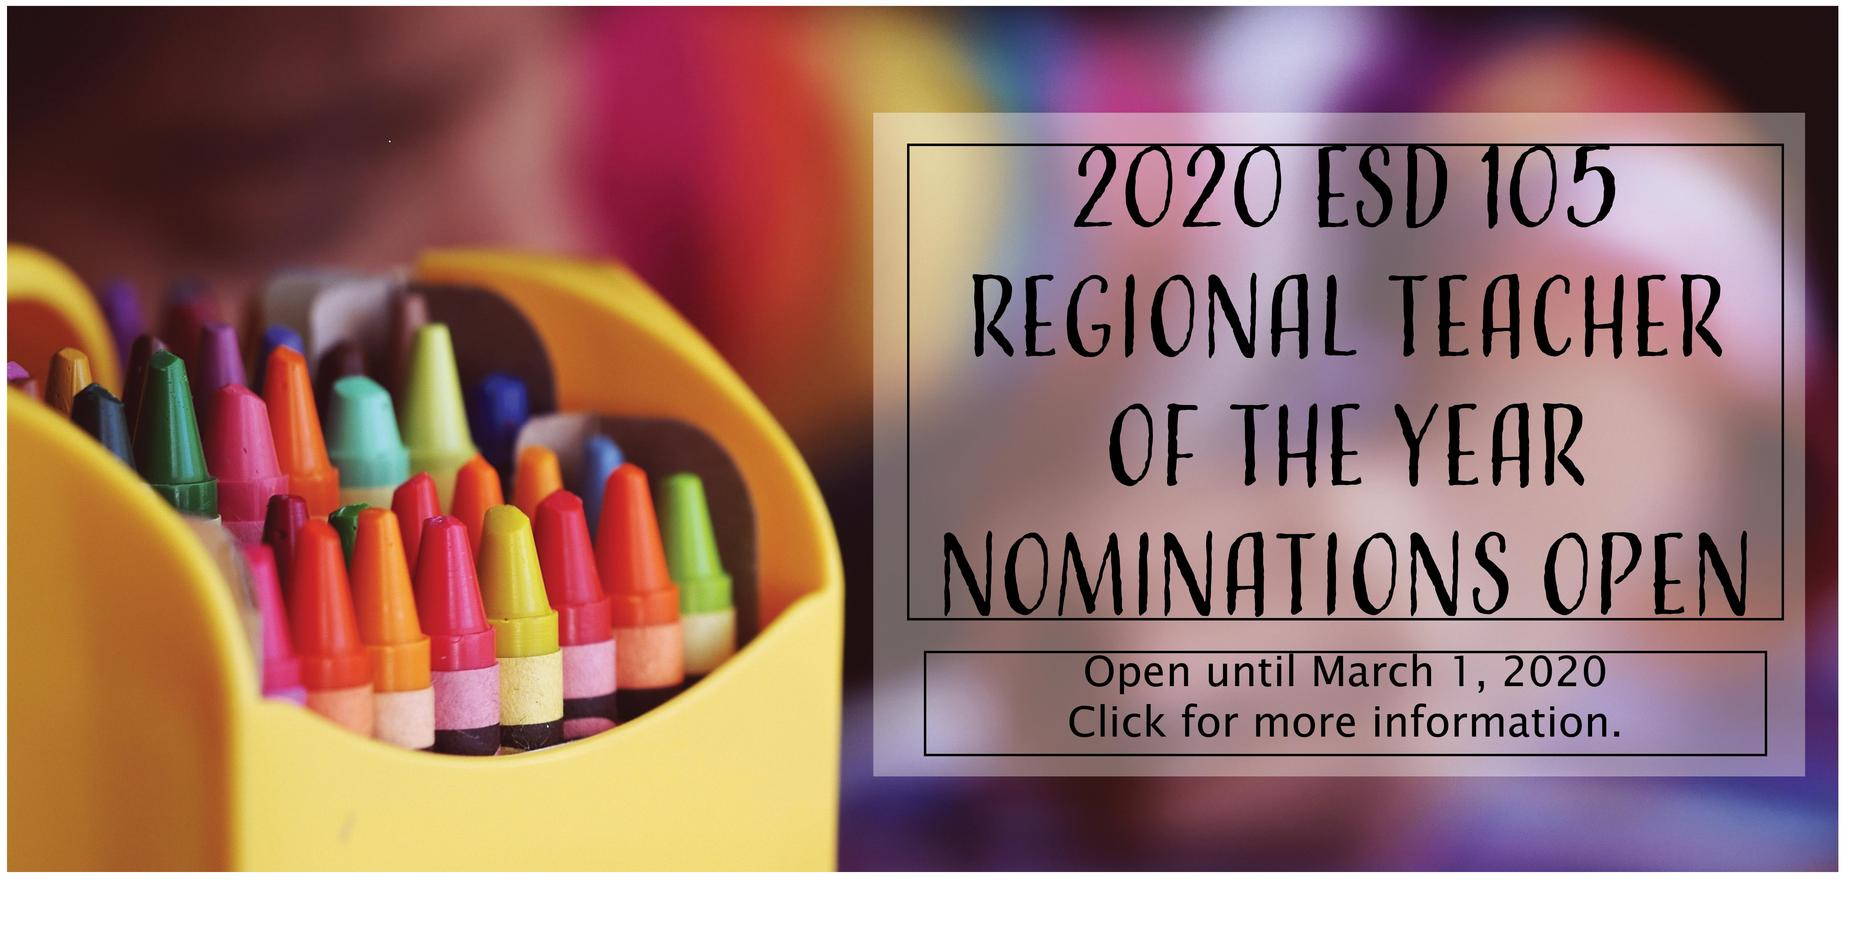 Information on 2020 nominations for teacher of the year.